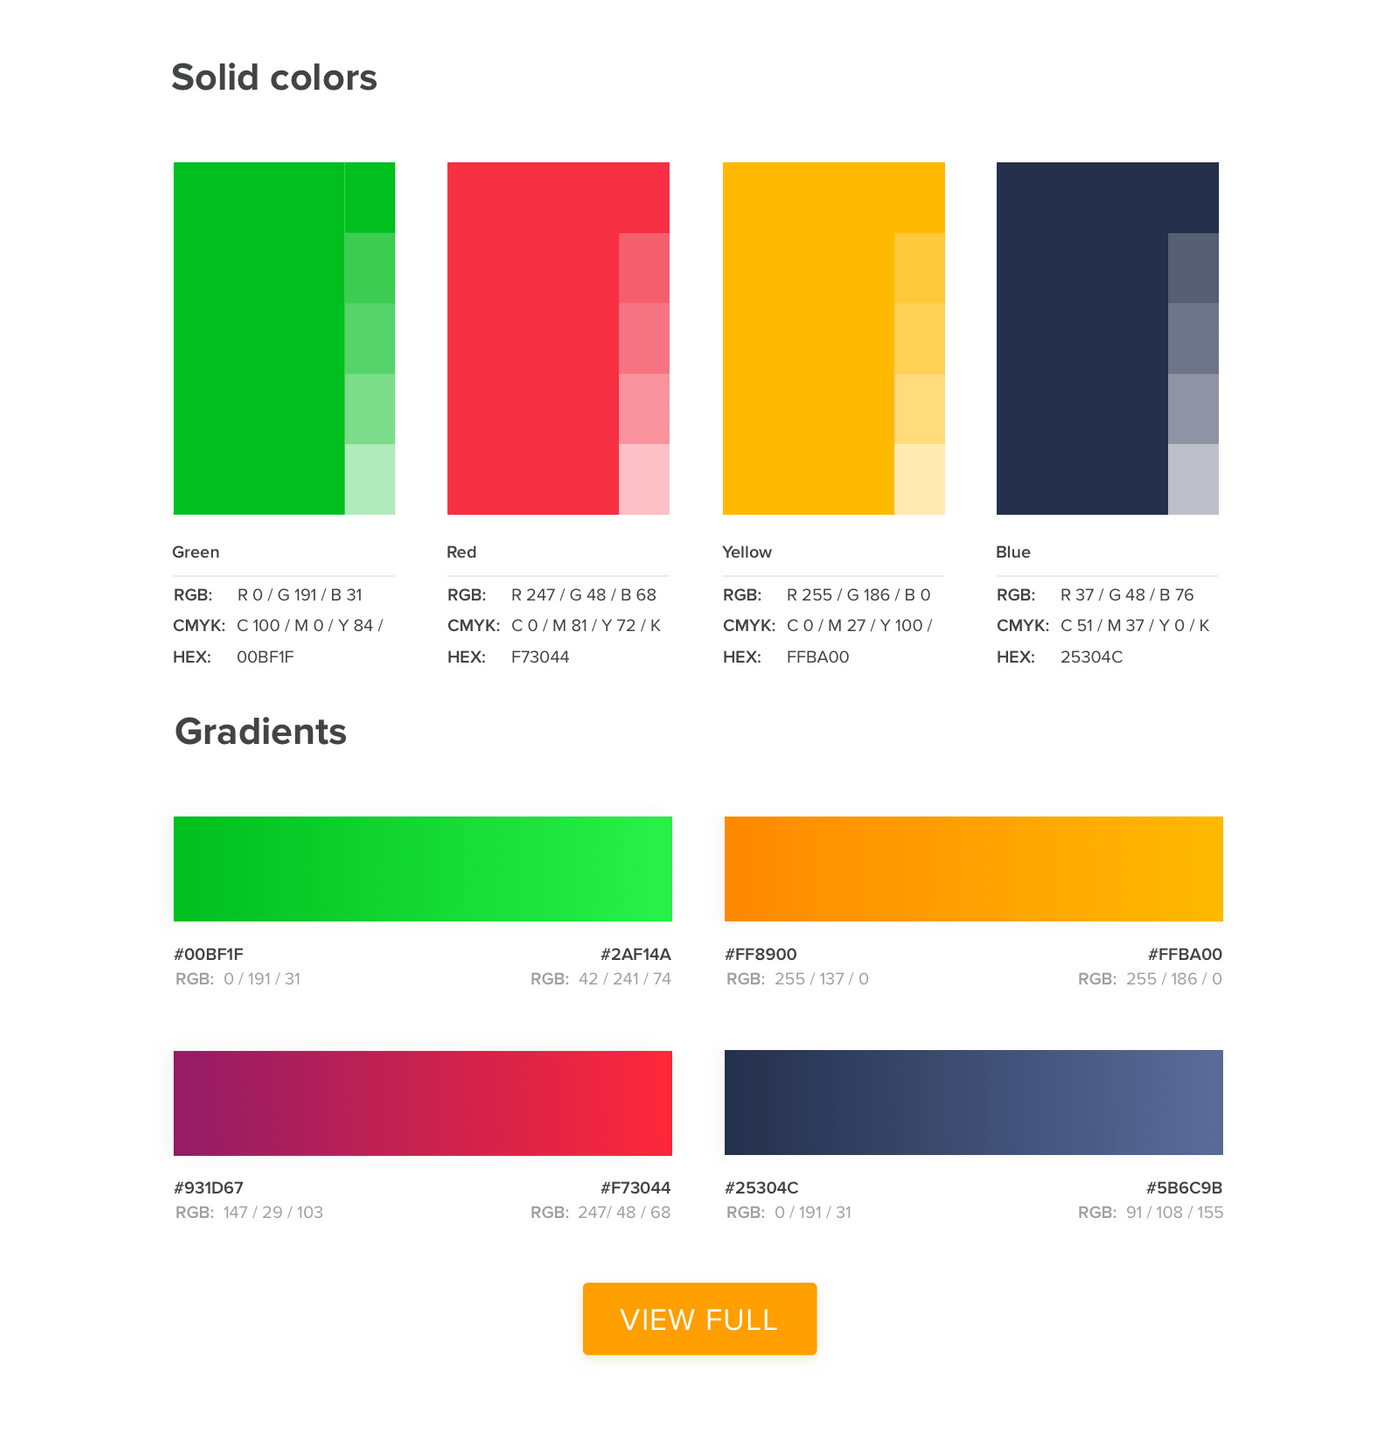 Example of a style guide